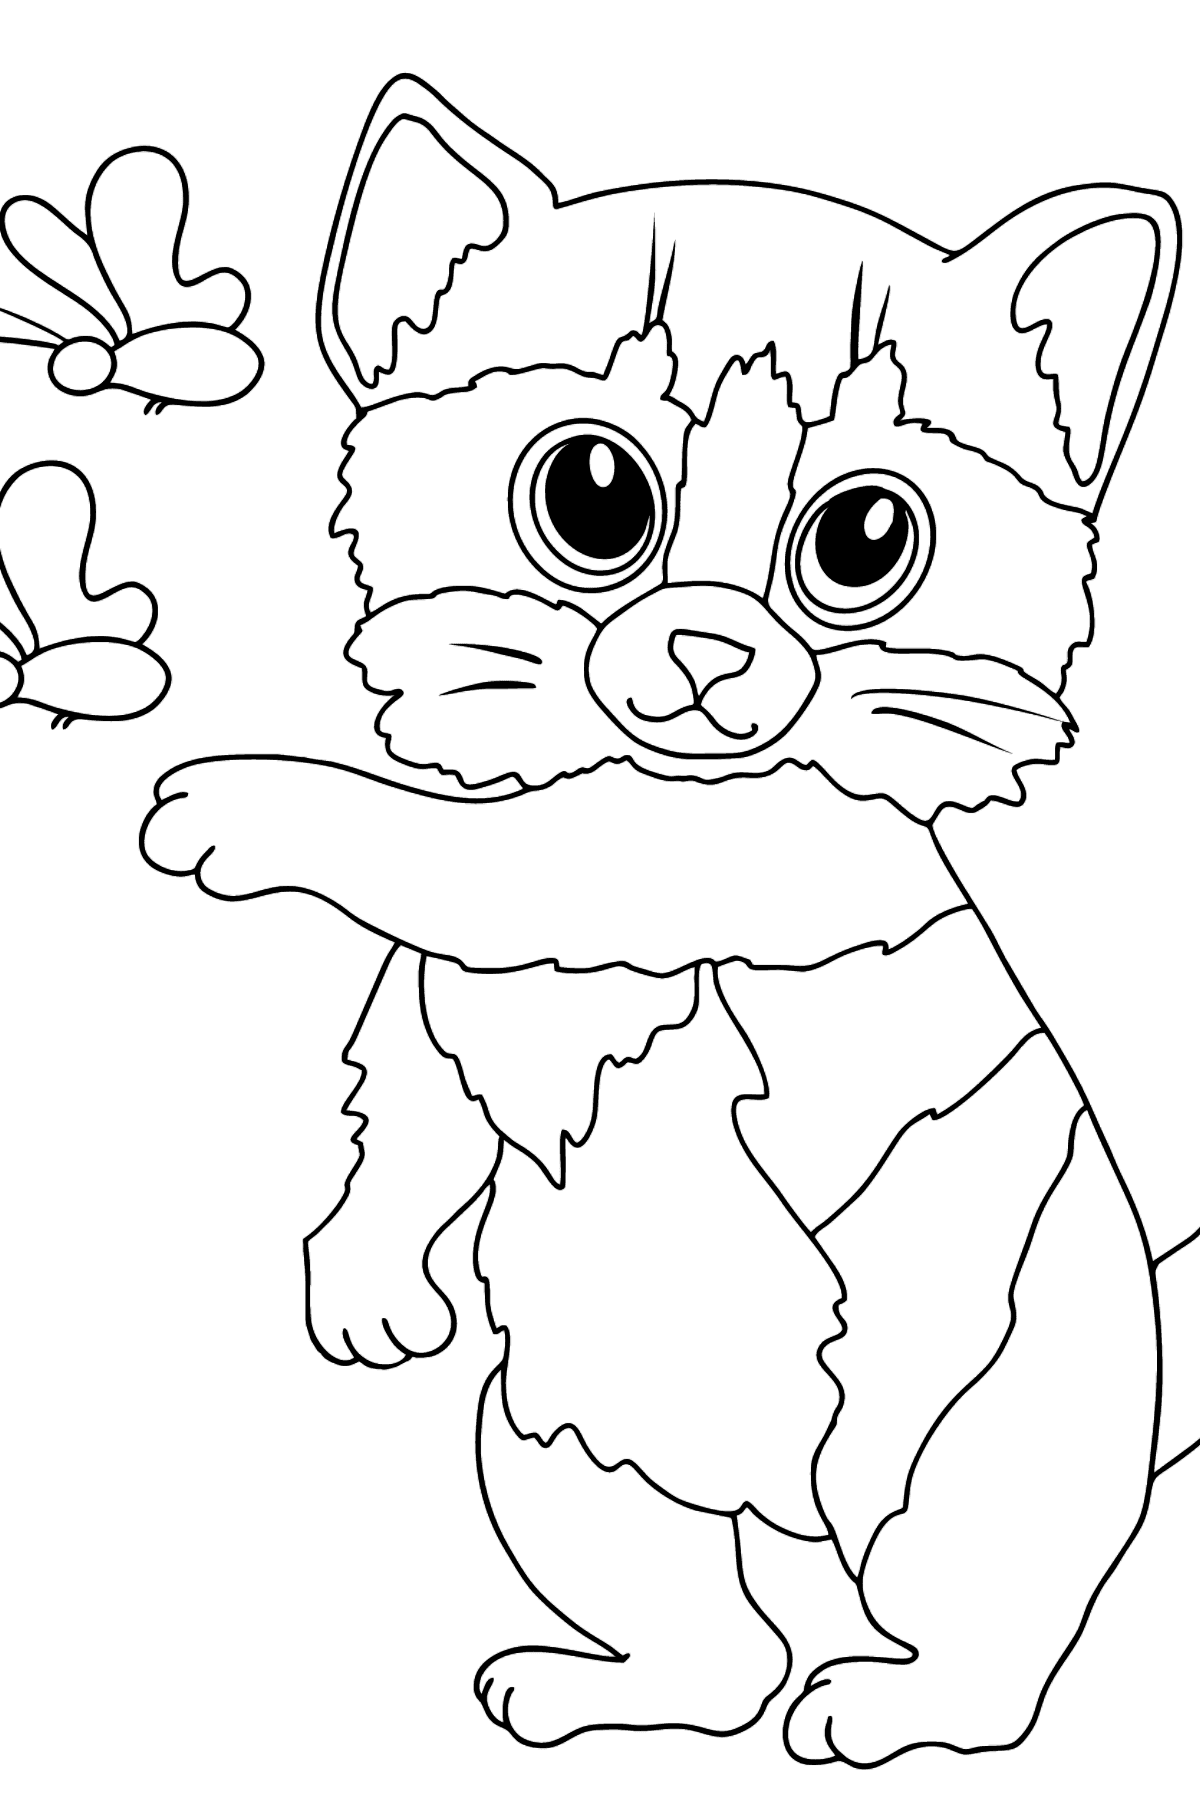 Coloring Page - An Orange Kitten with Butterflies - Coloring Pages for Kids